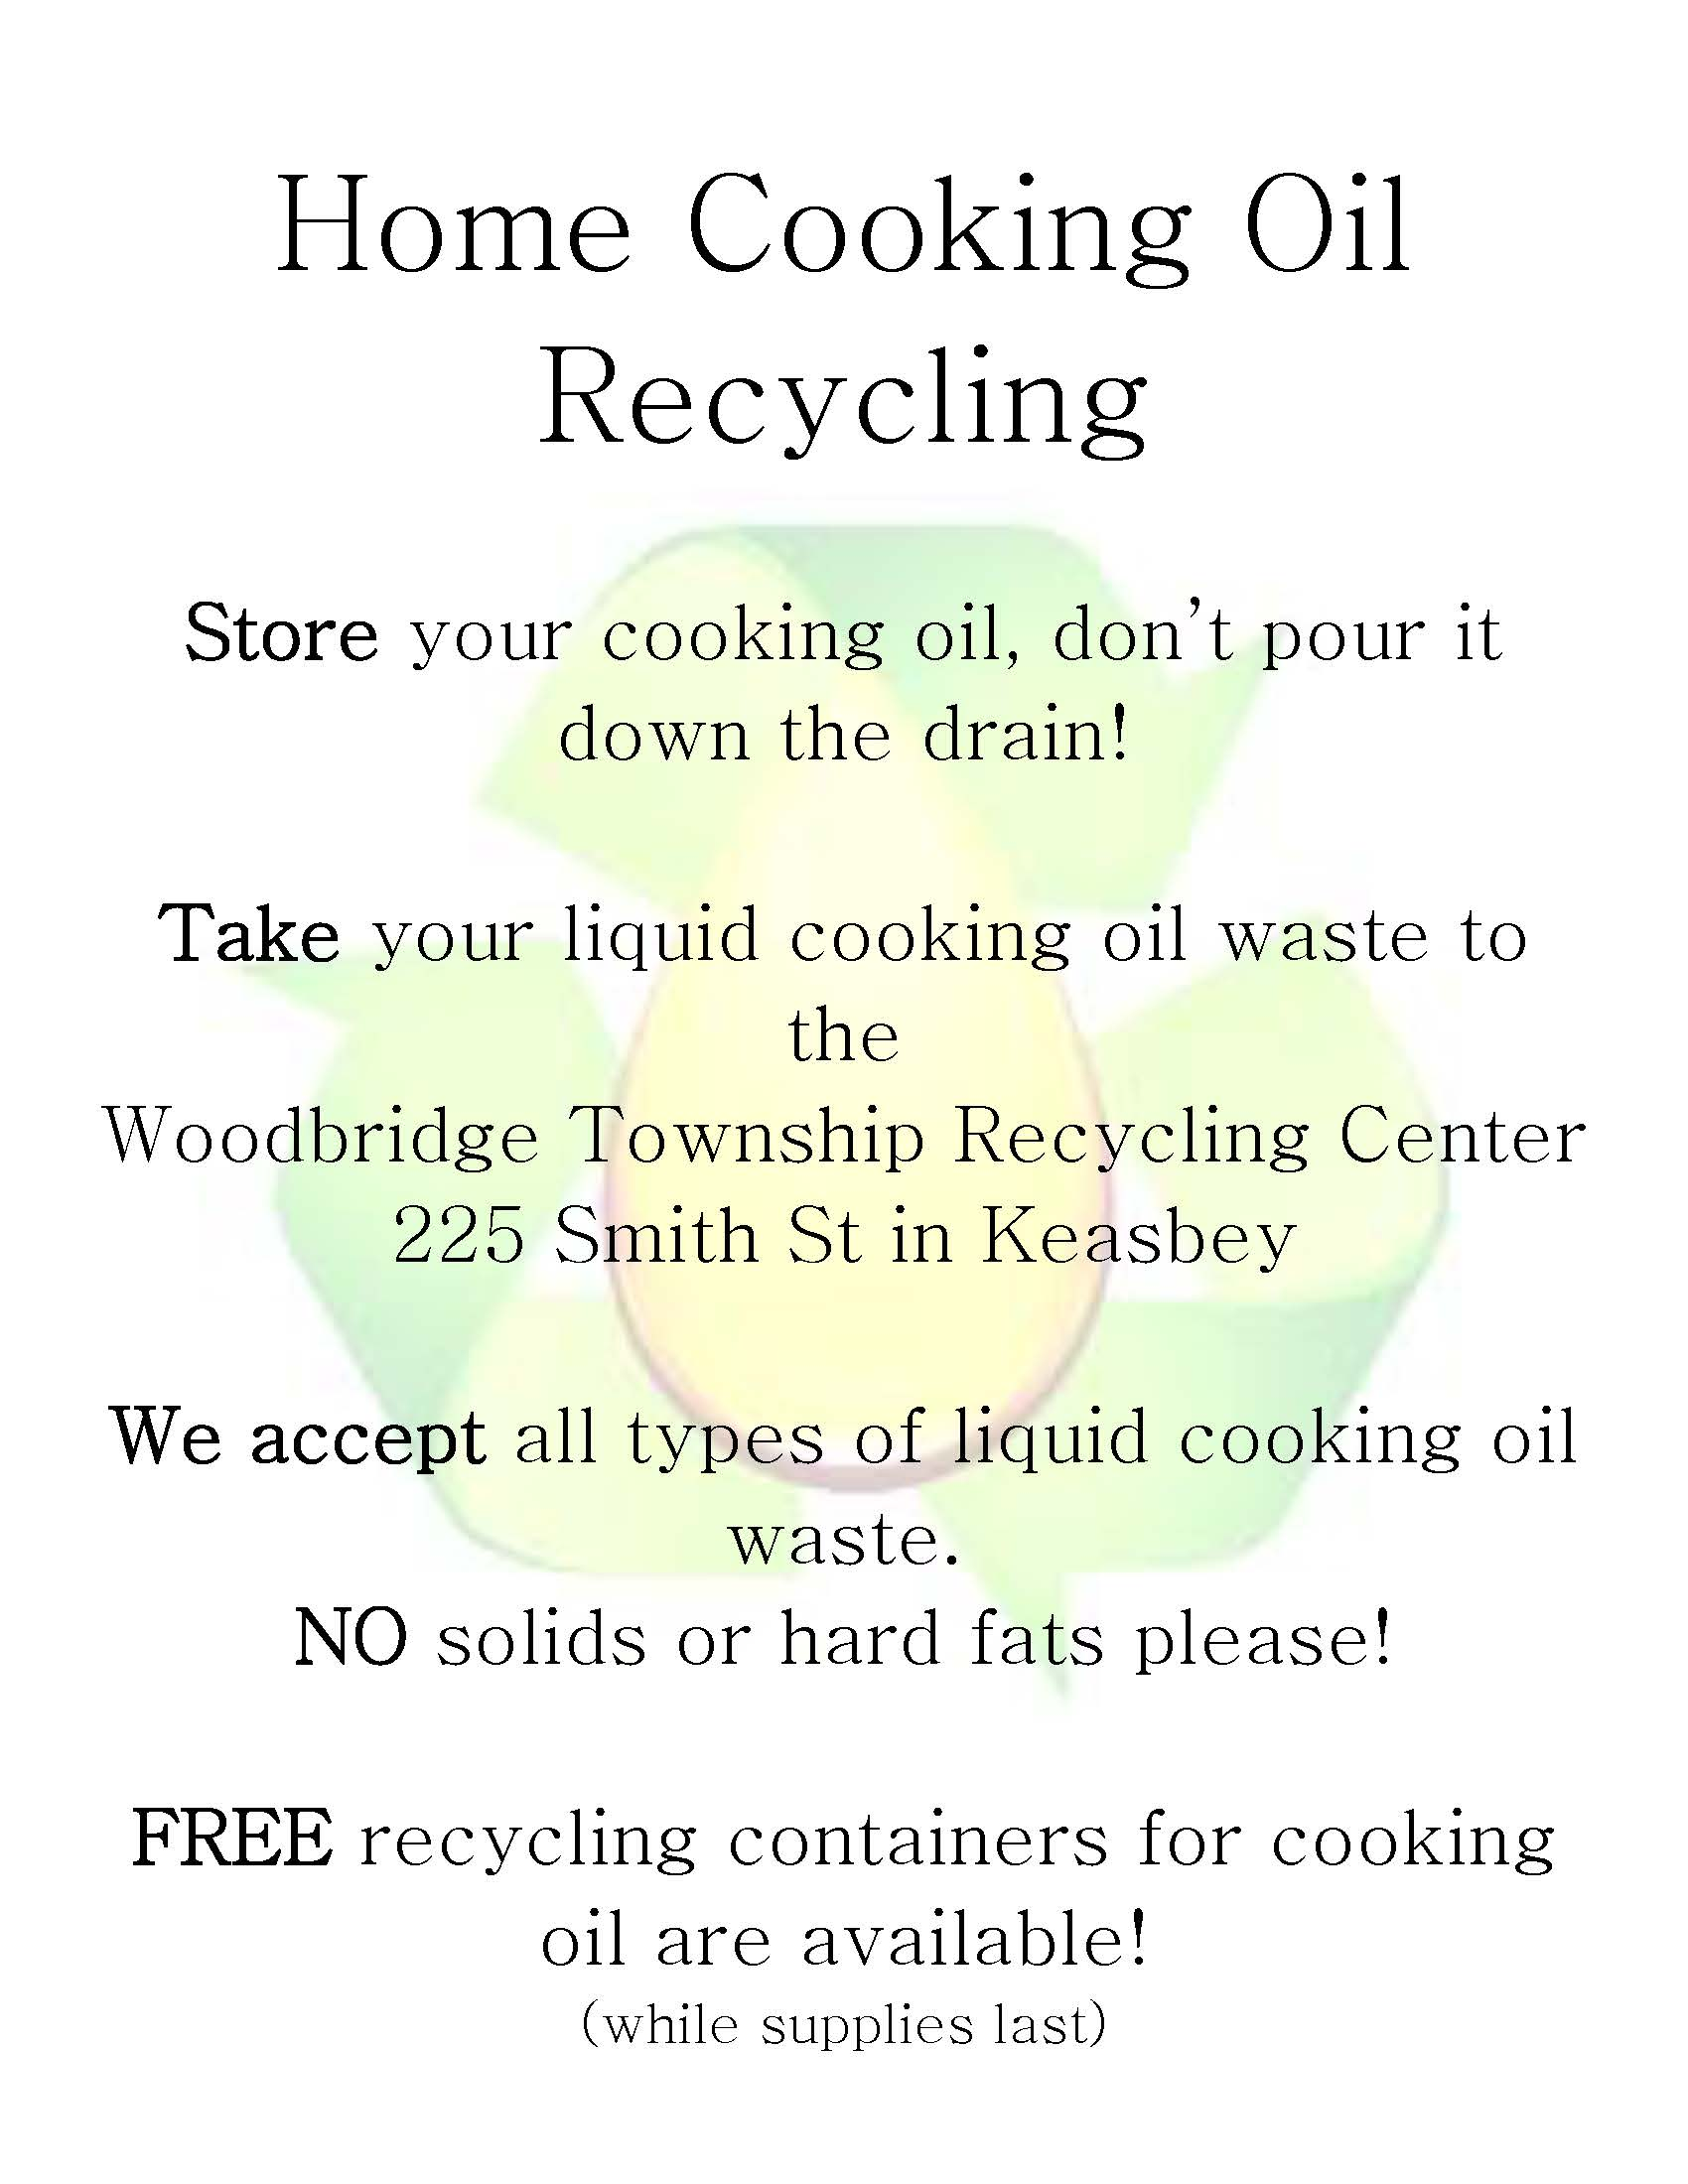 Flyer-Home Cooking Oil Recycling